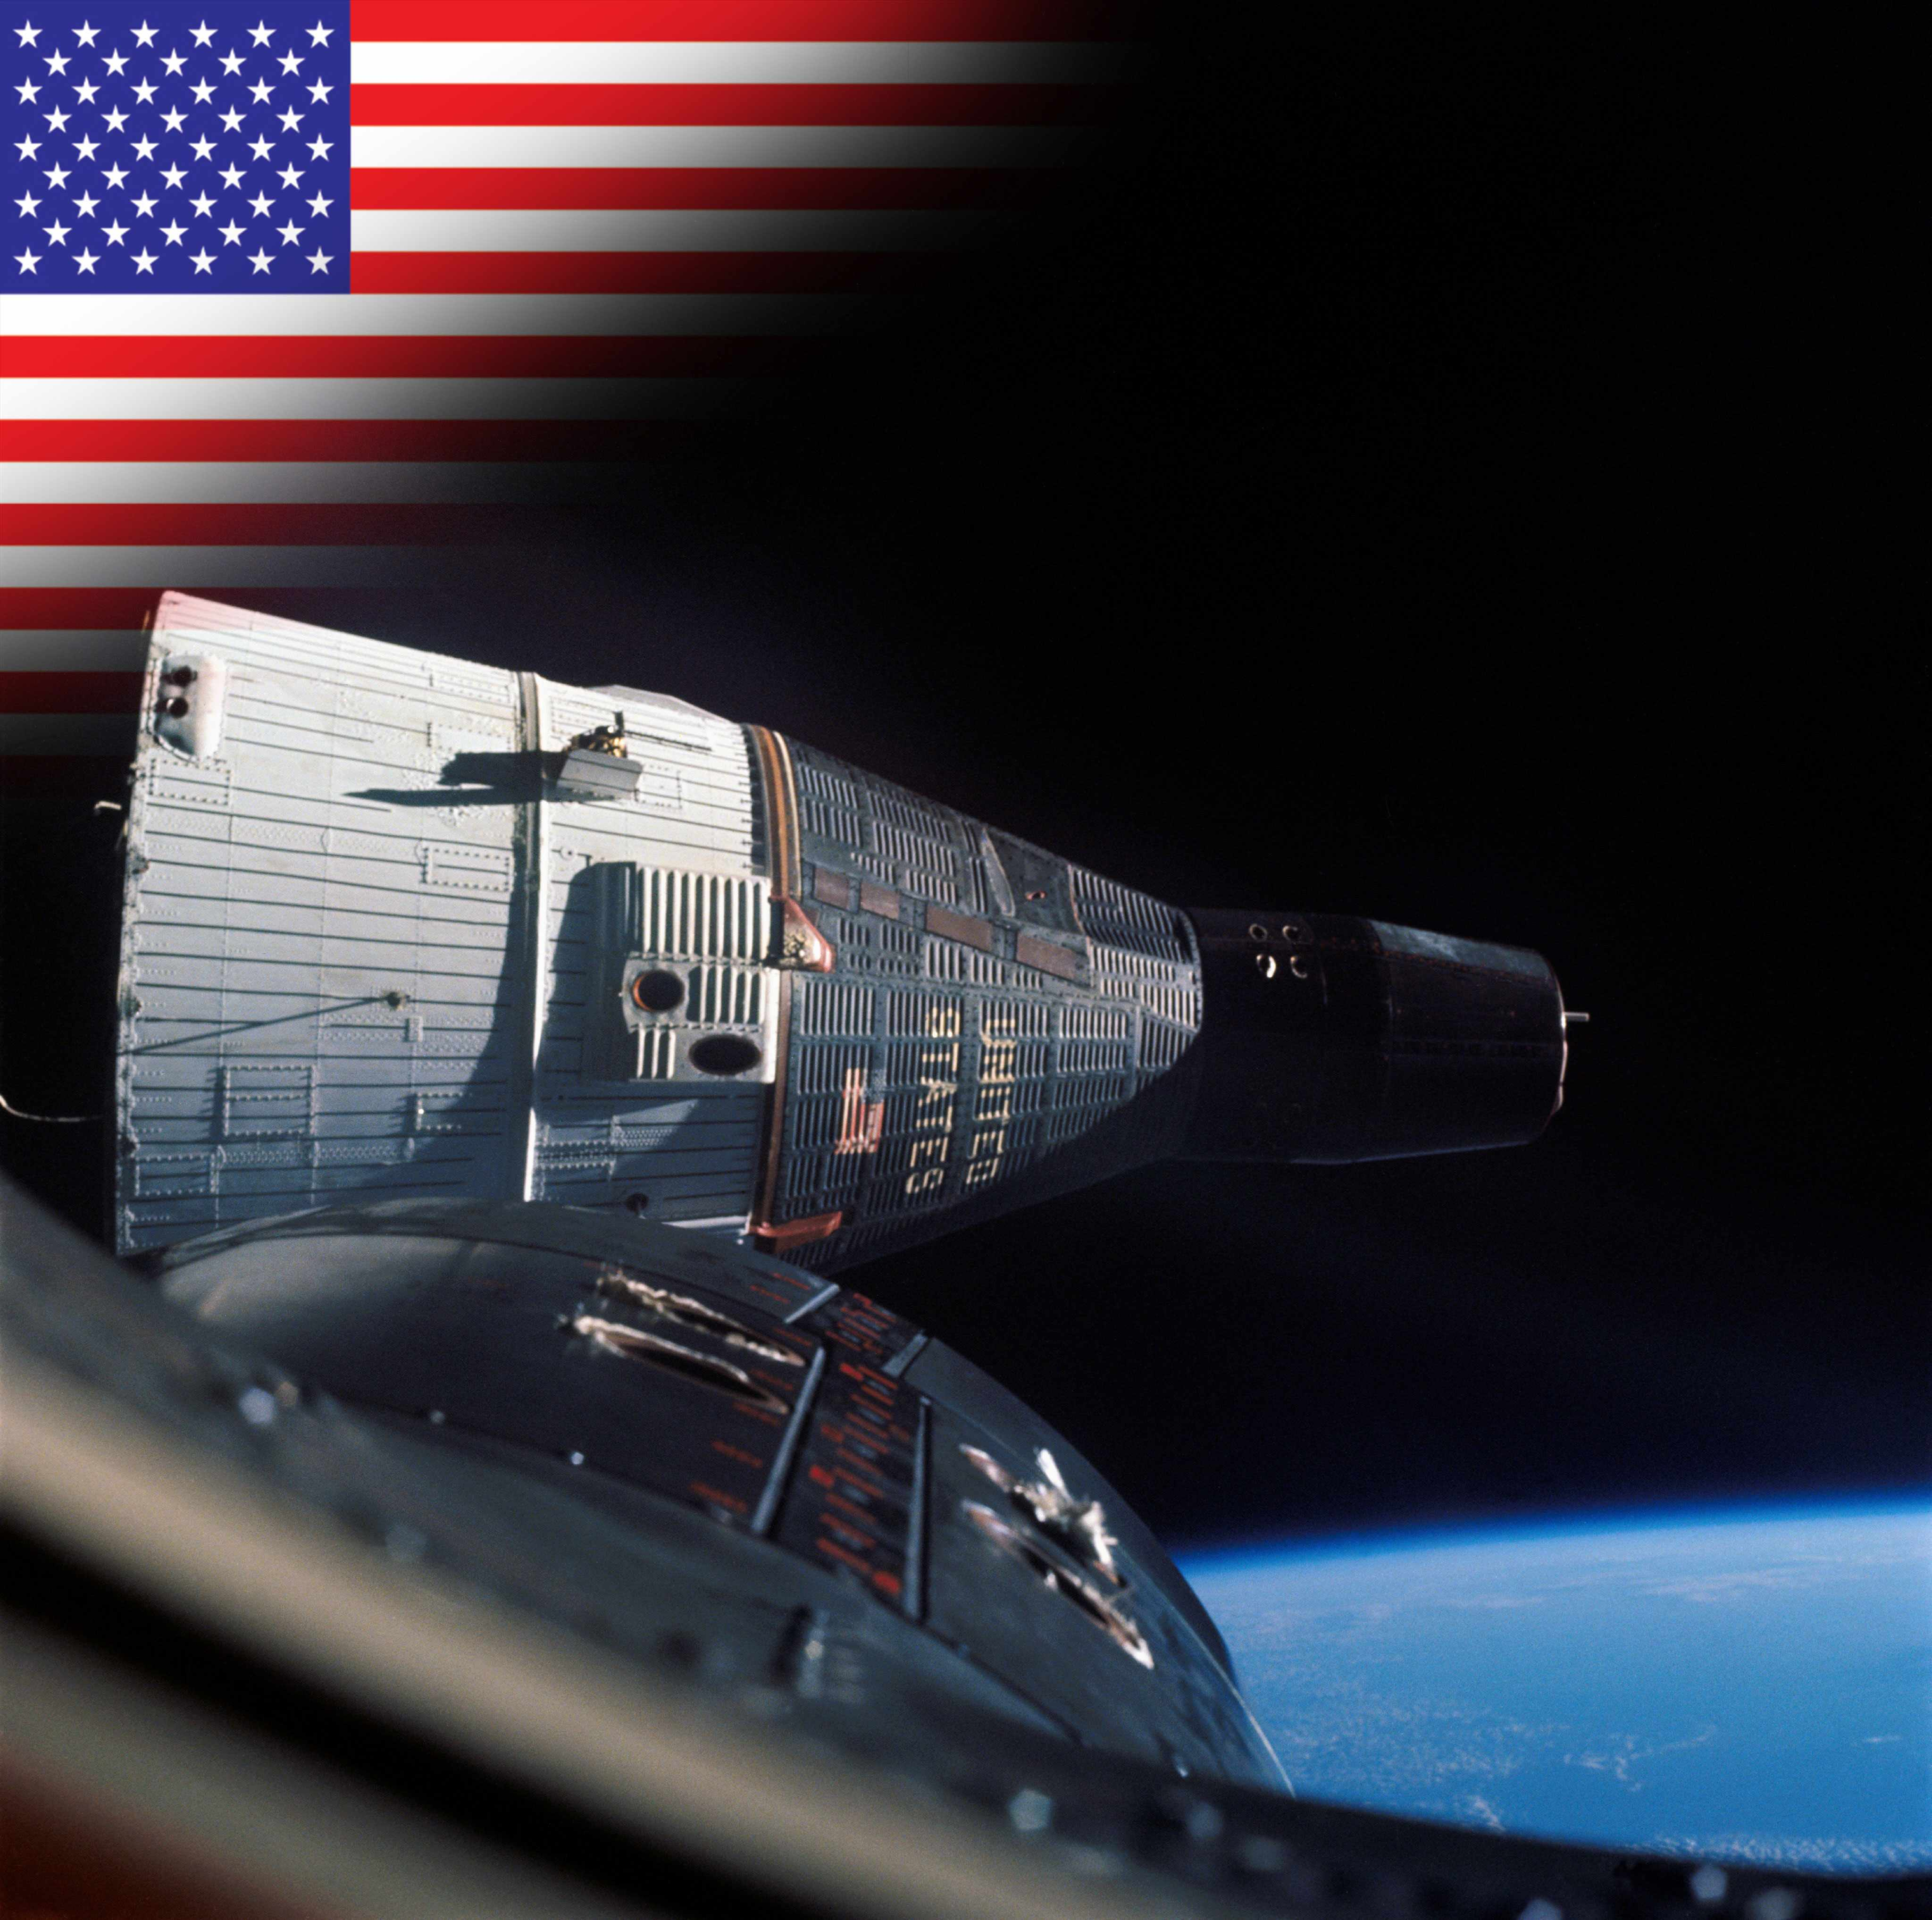 Gemini 6A and 7 make the first orbital rendezvous. (Gemini 7 spacecraft was taken from Gemini 6 during rendezvous © NASA)